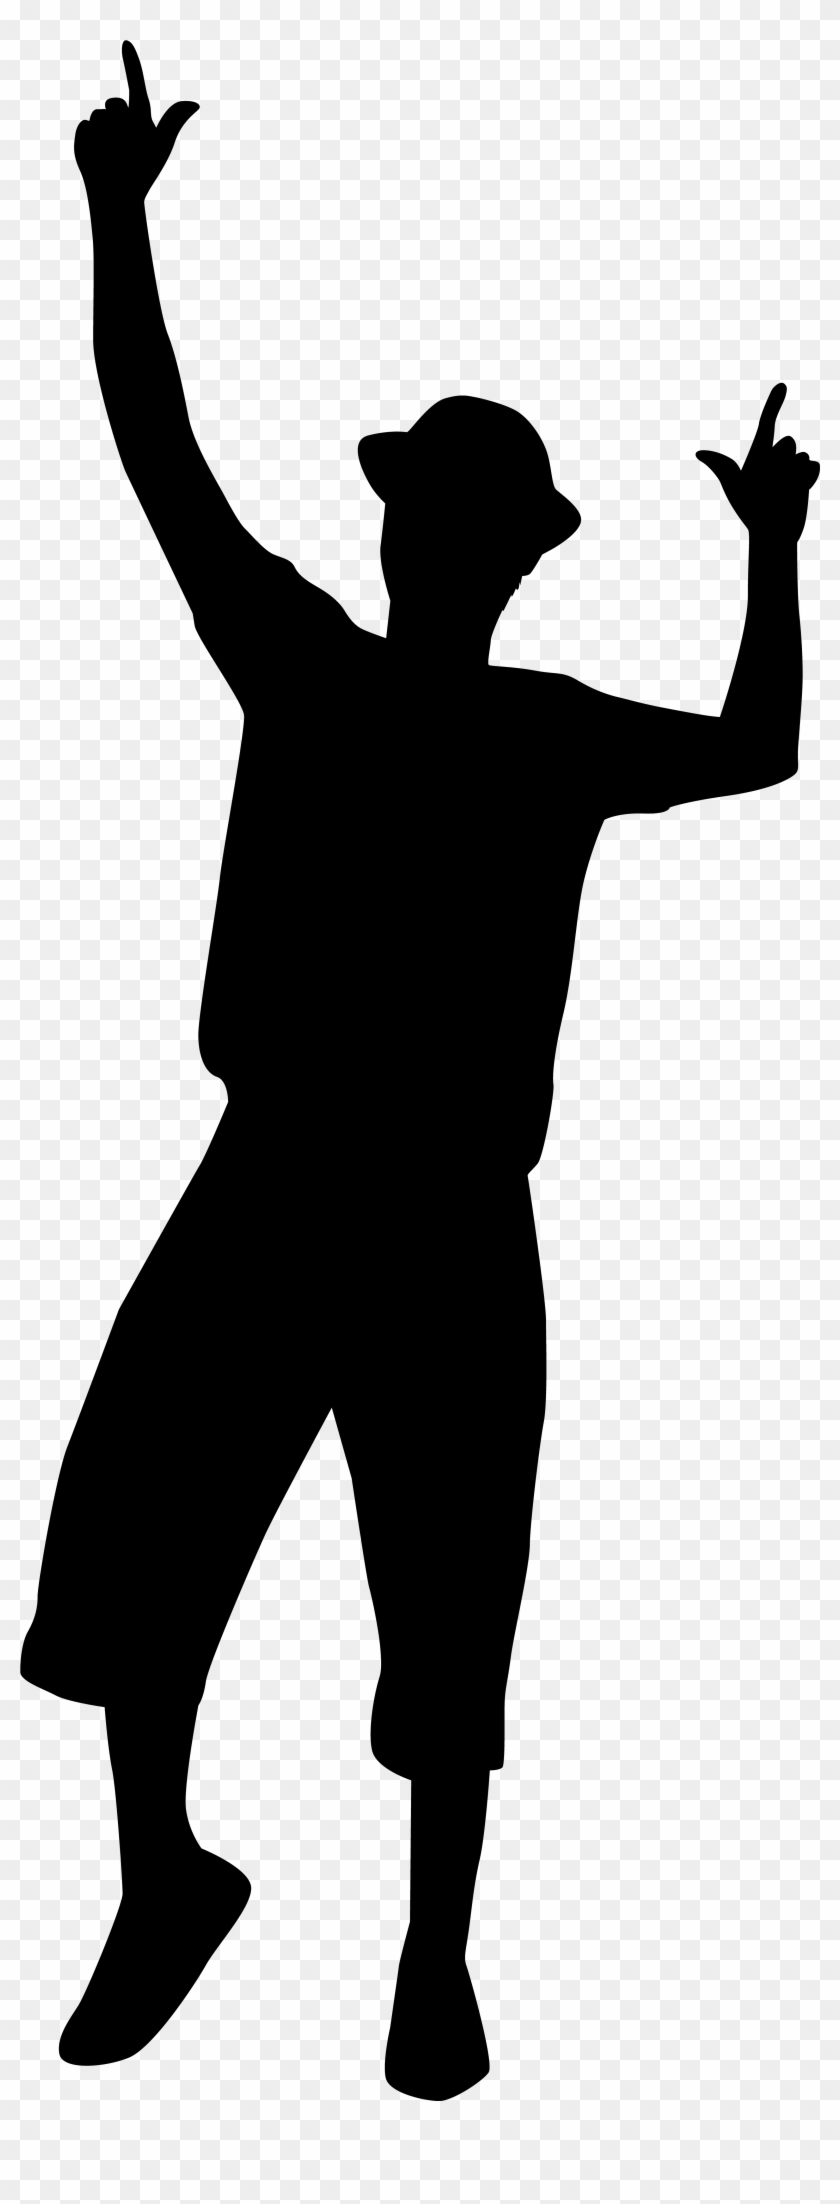 Dancing Man Silhouette Png Clip Art Imageu200b Gallery - People Dancing Drawing #22766